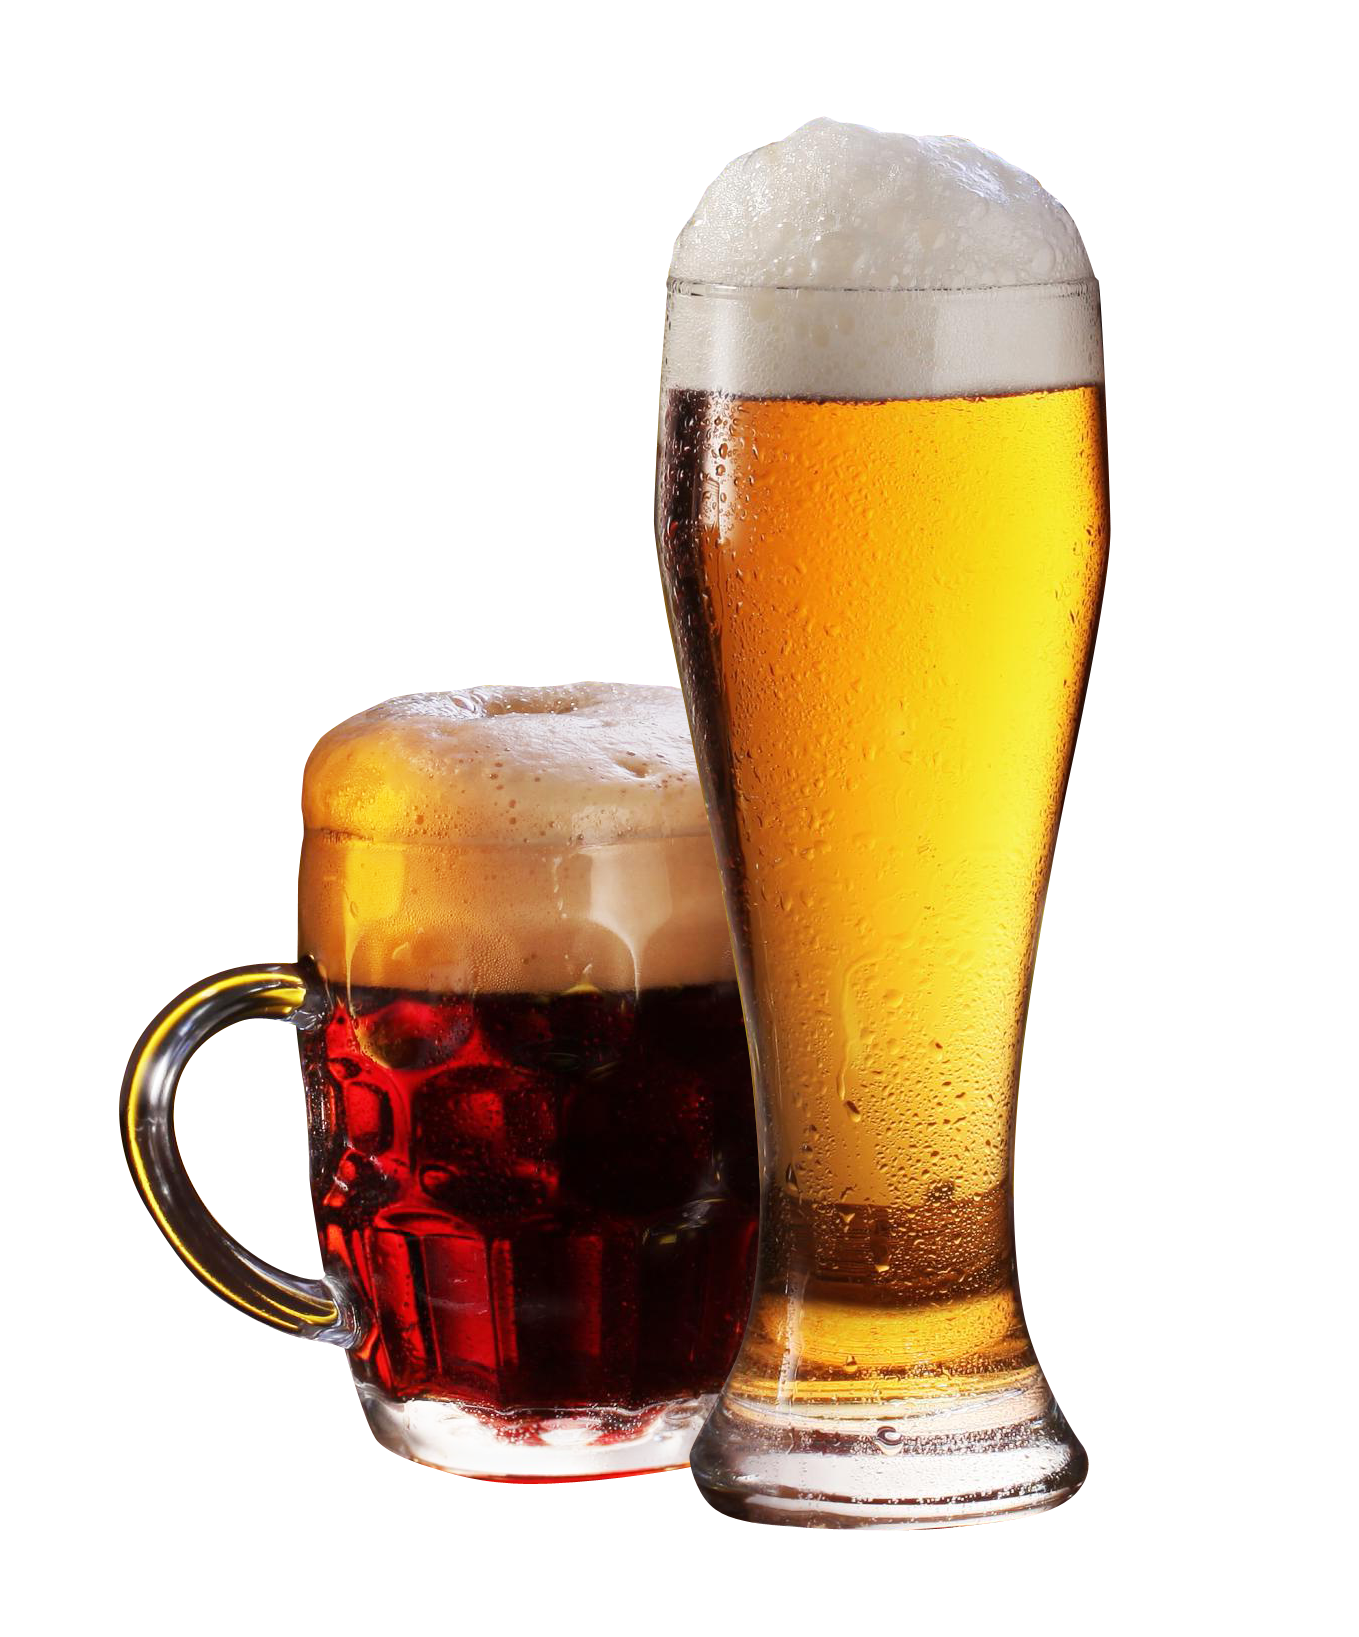 Beer and wine png. Glass image purepng free